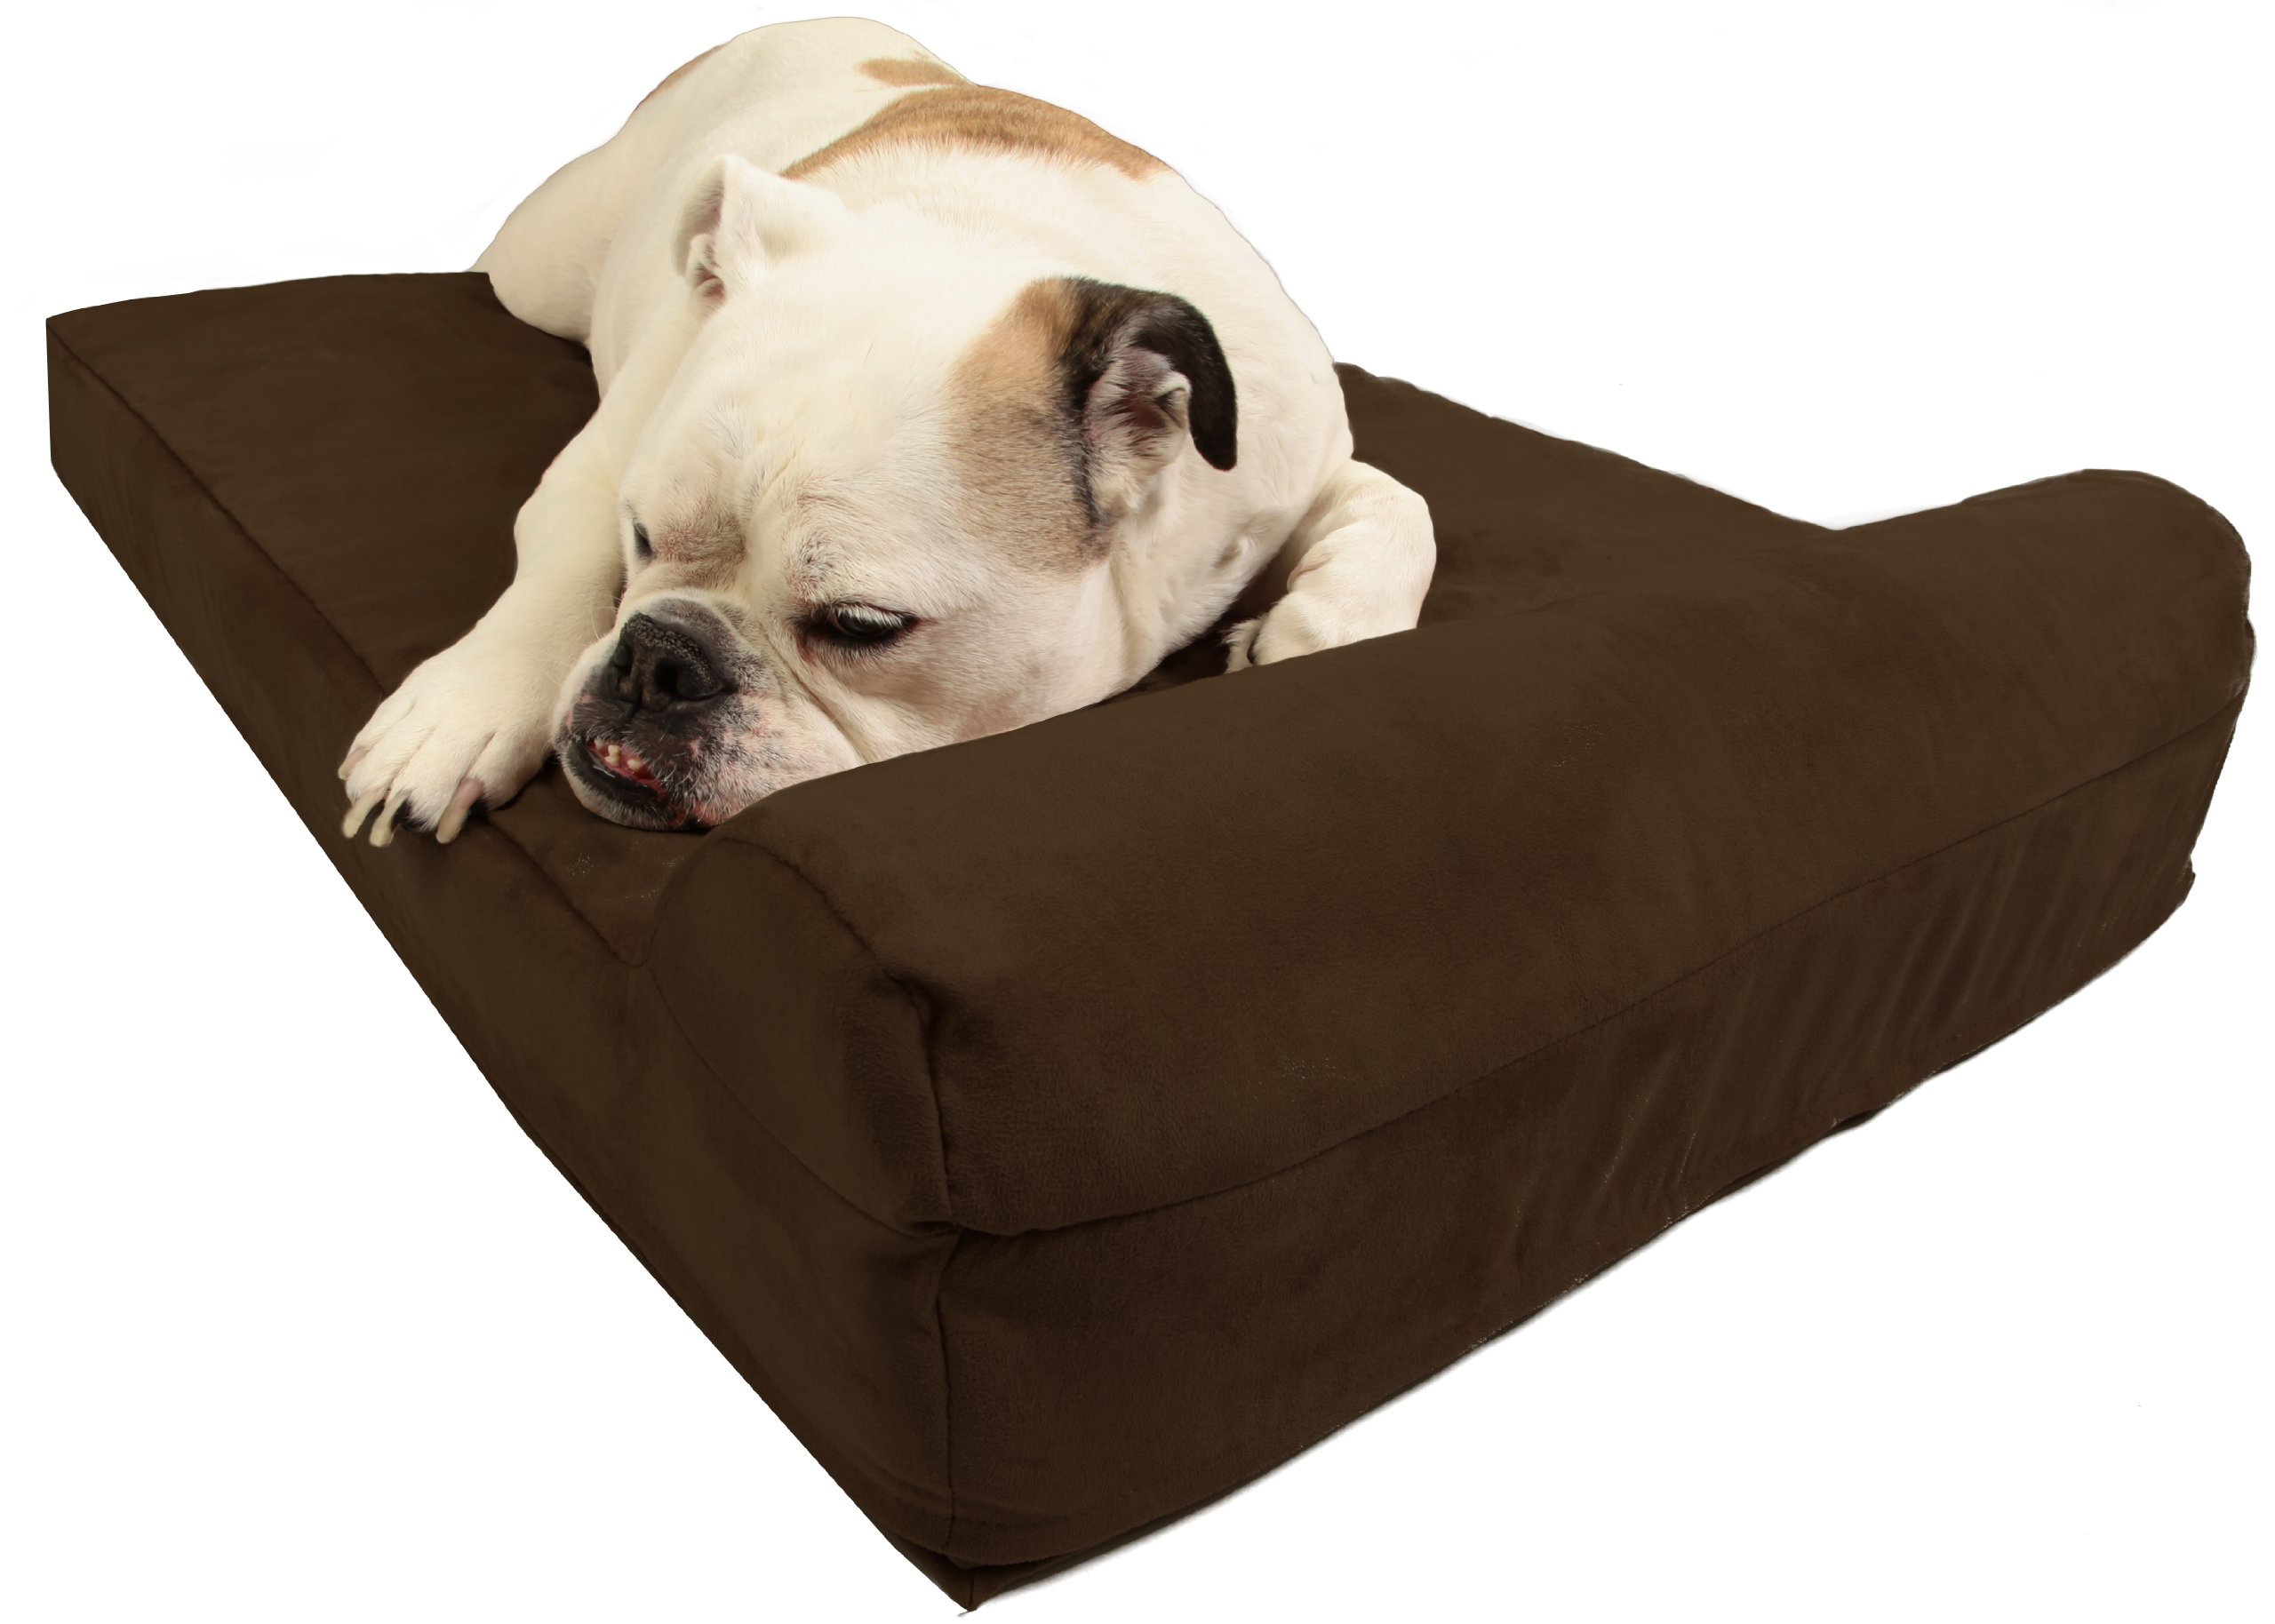 Barker Junior - 4'' Pillow Top Orthopedic Dog Bed with Headrest for Medium Size Dogs 30 - 50 Pounds